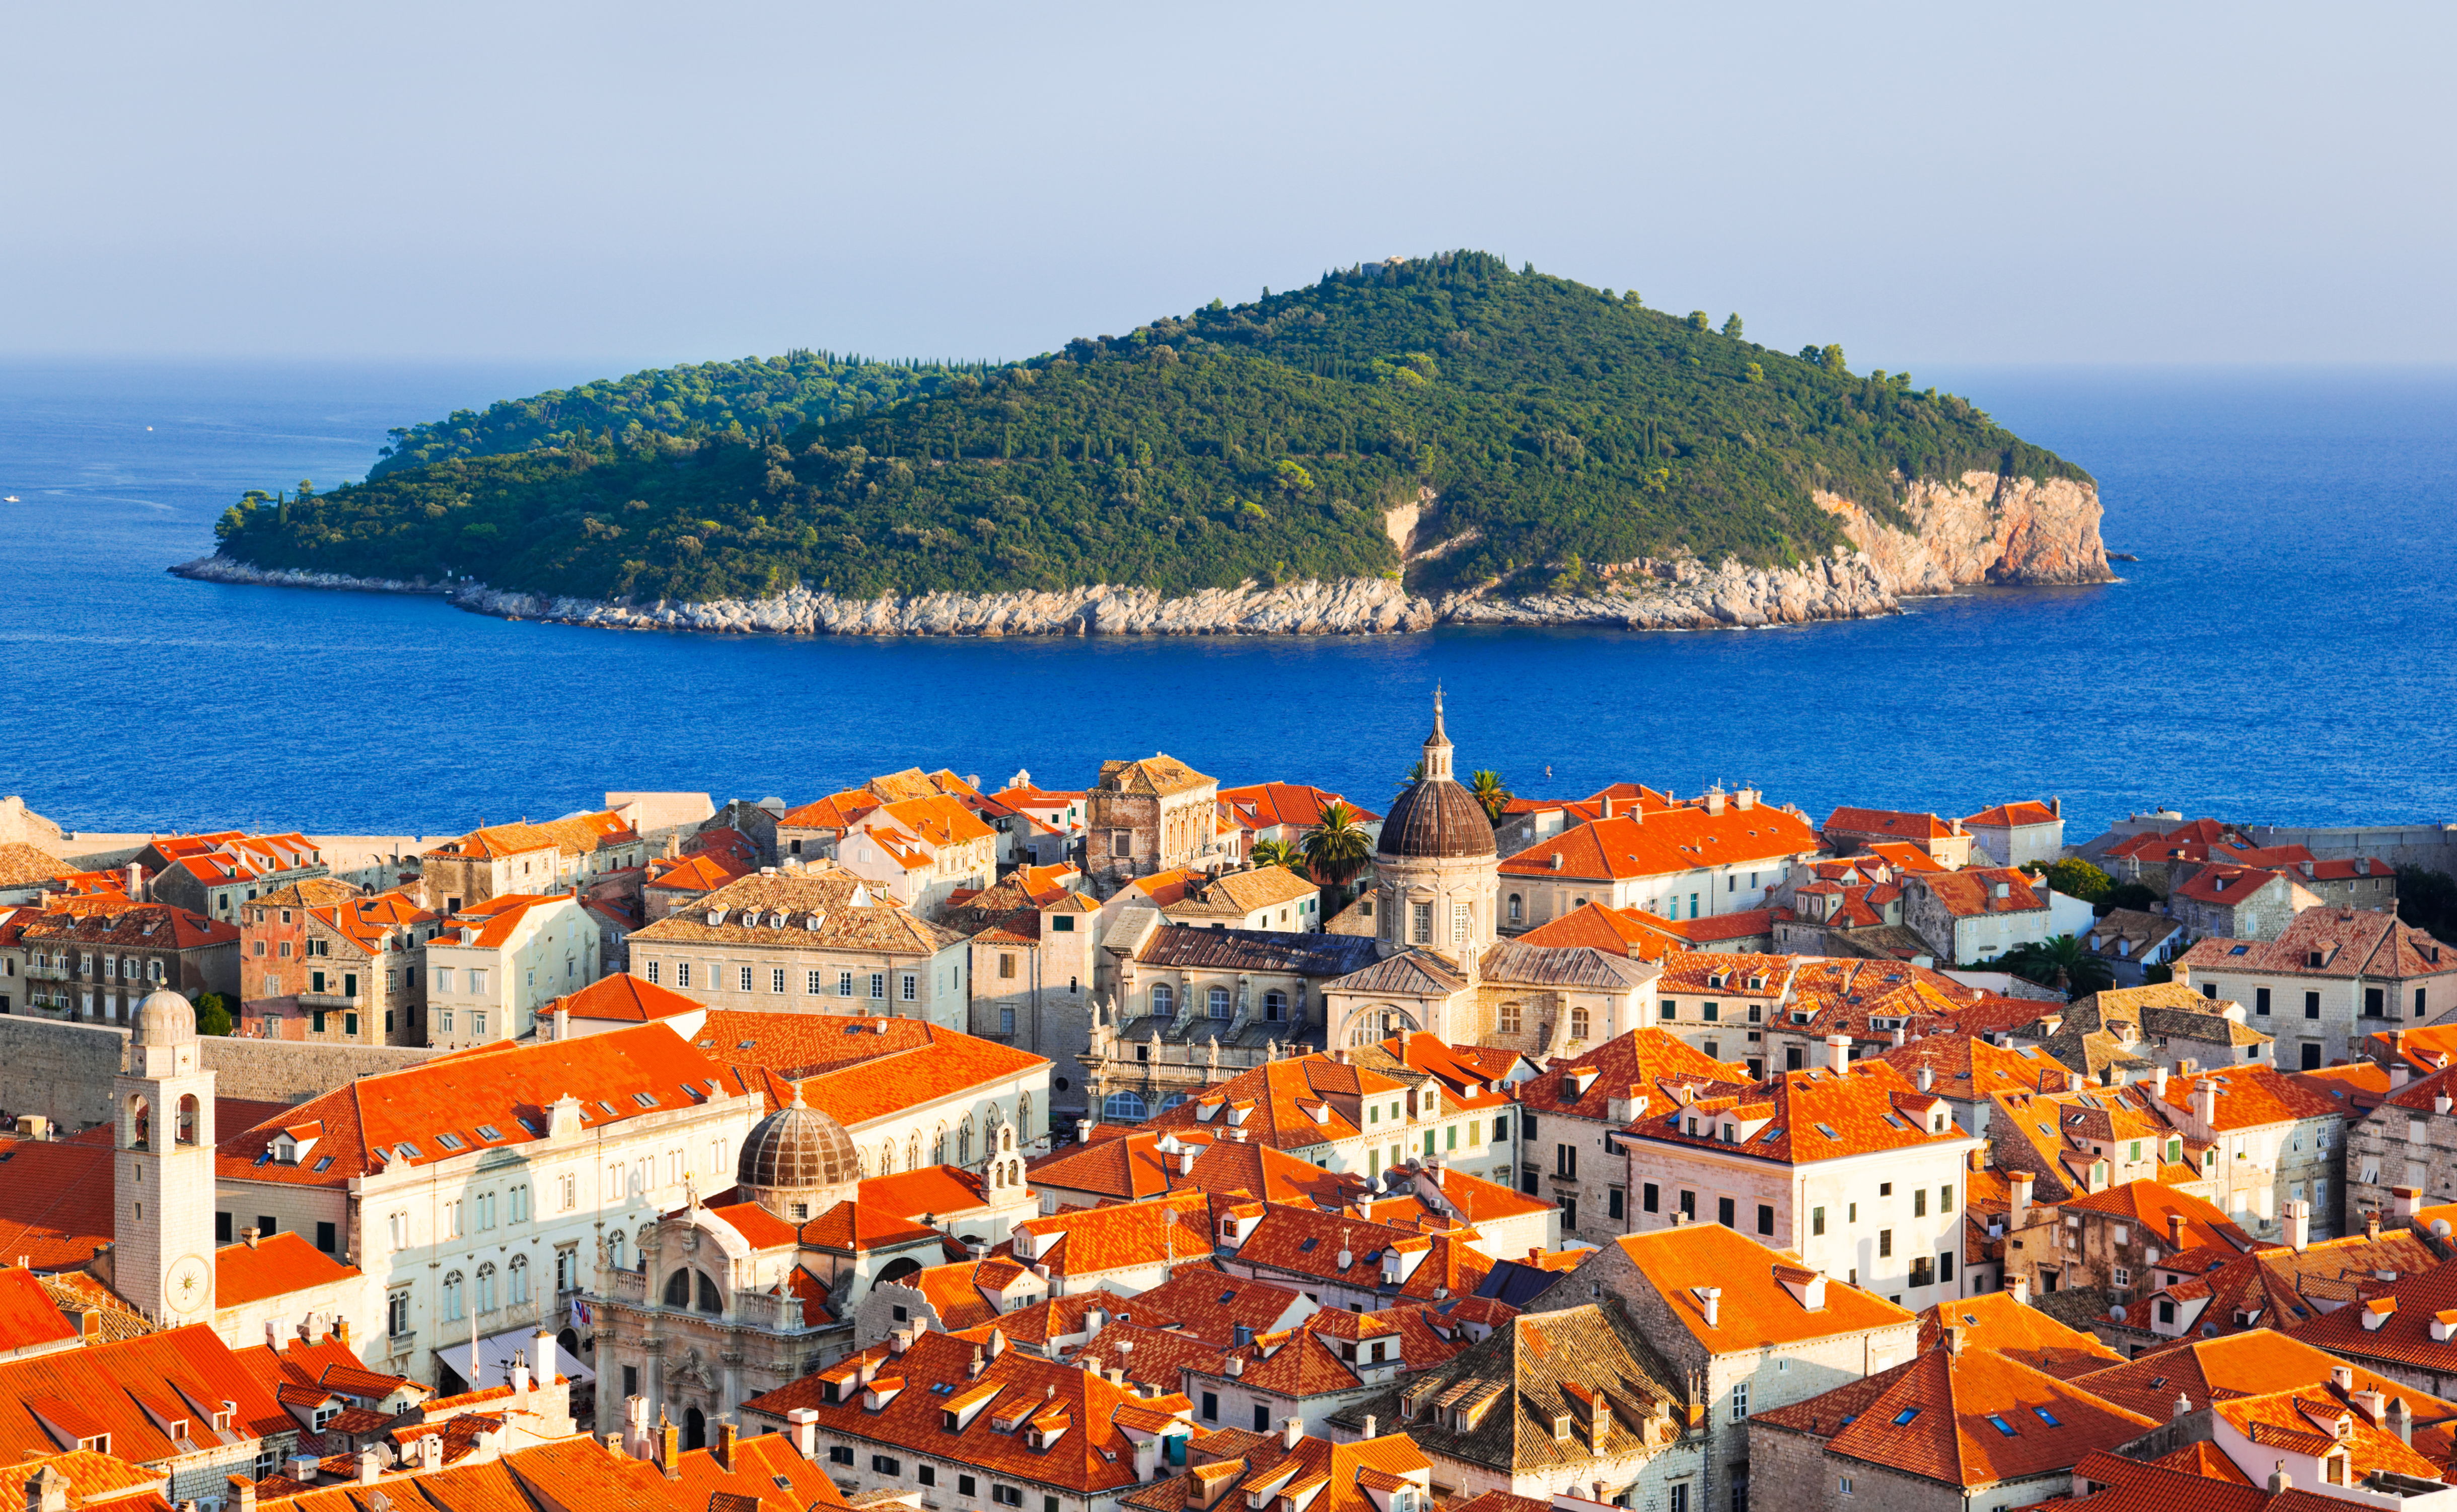 Town Dubrovnik and island in Croatia